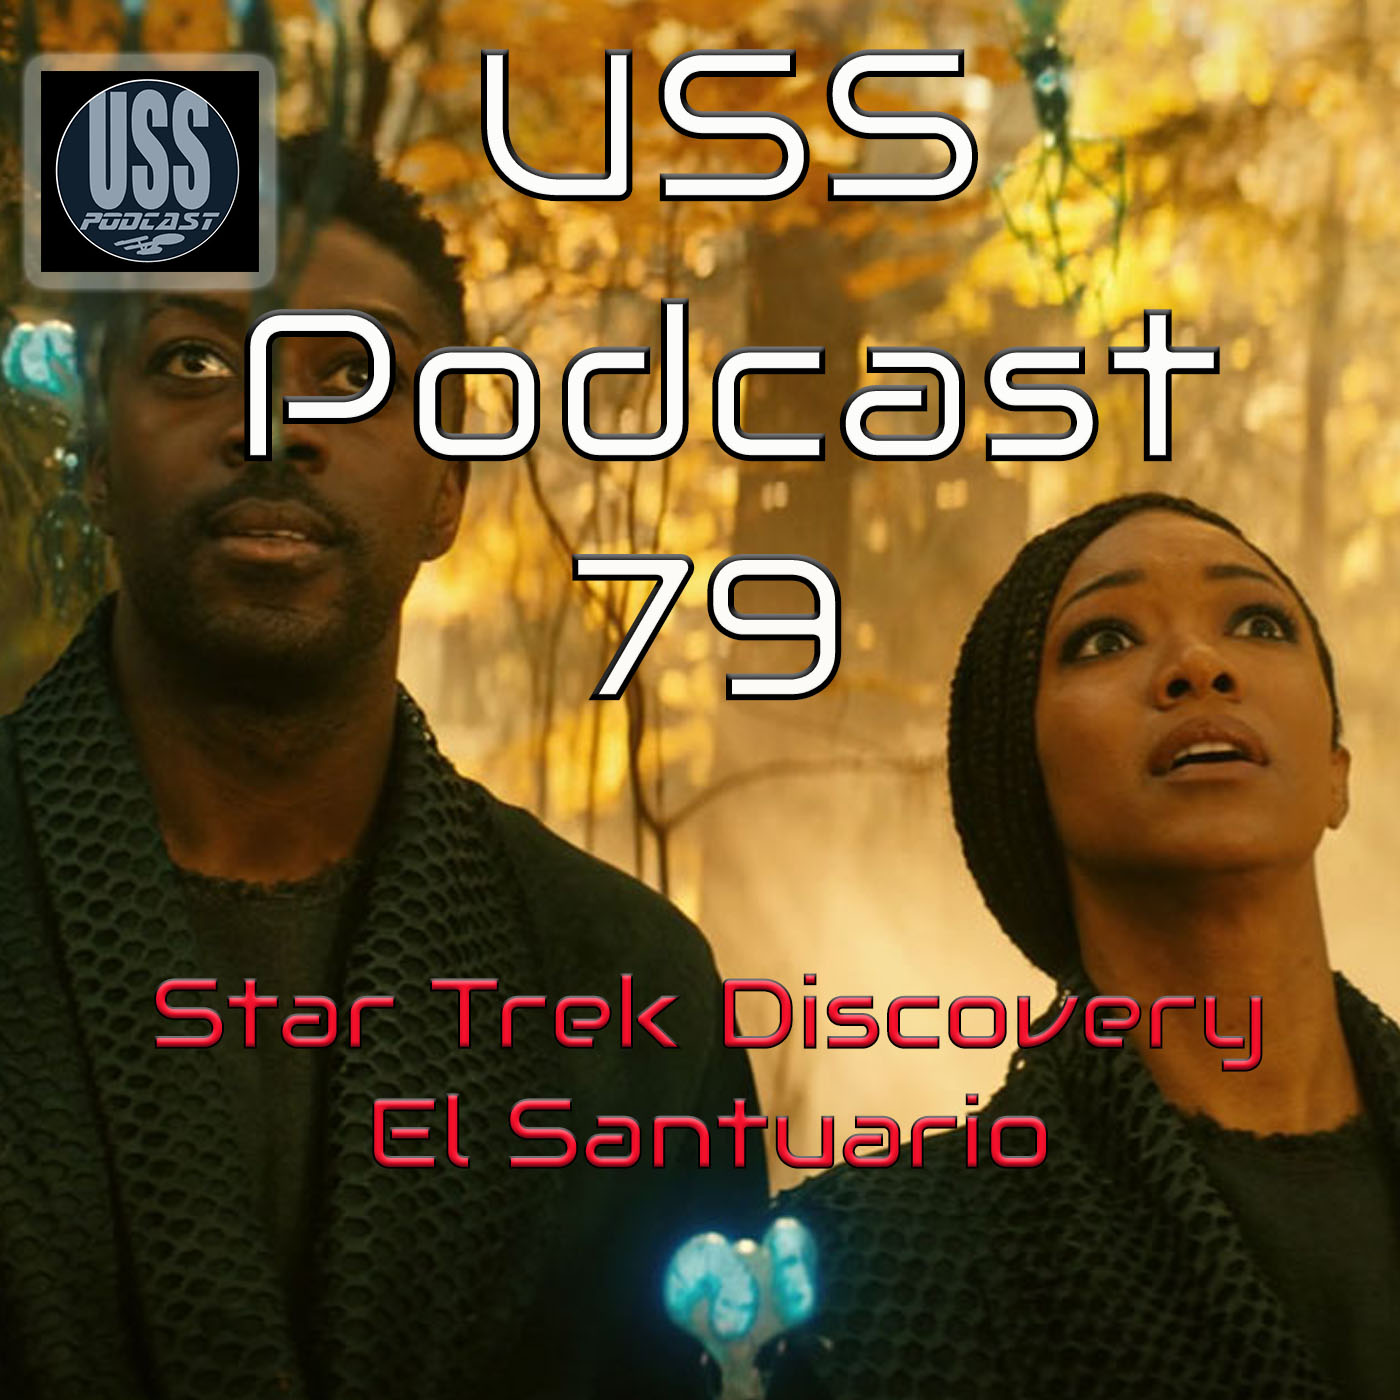 Star Trek Discovery 3×08 El Refugio USS Podcast 79